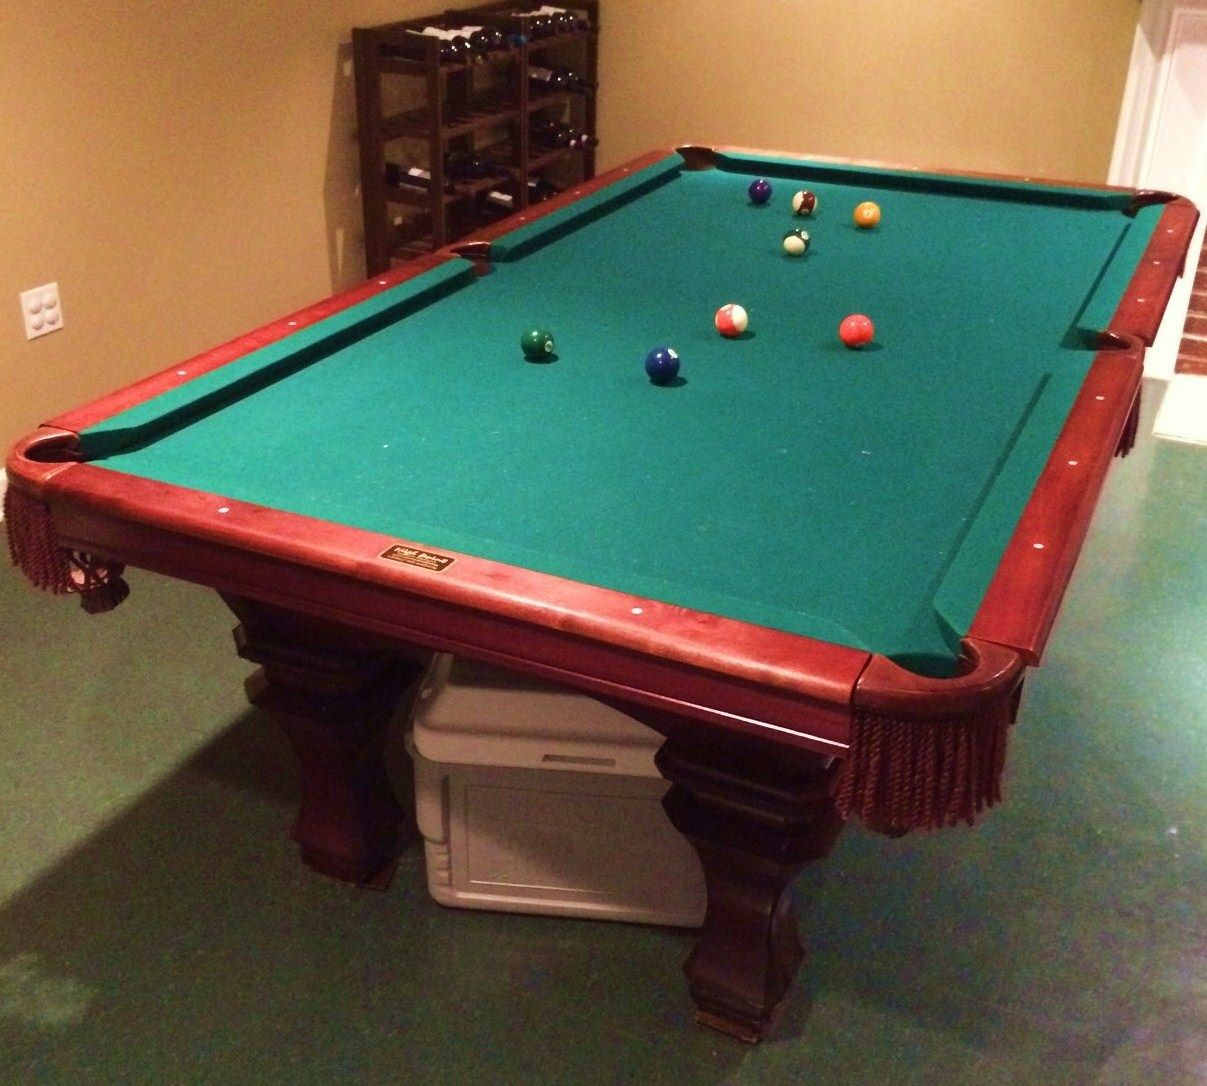 A26 Peter Vitalie Billiards Pool Table Sold Used